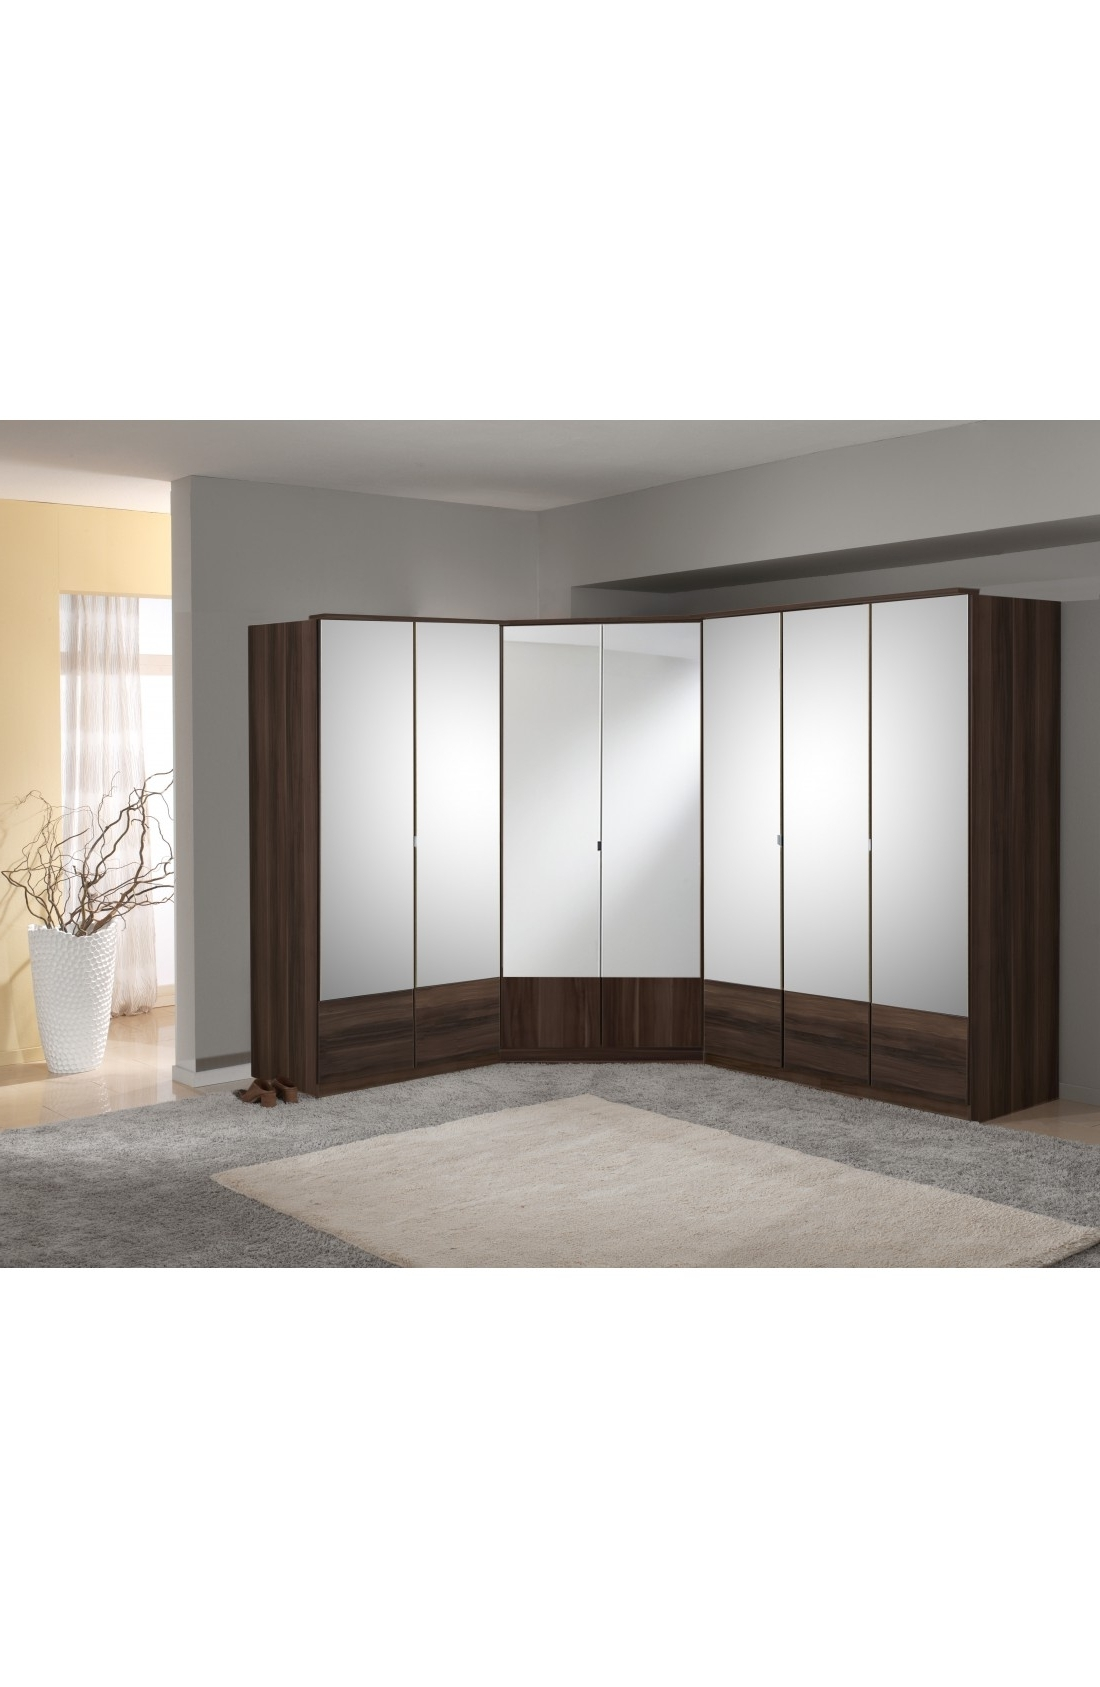 Slumberhaus 'imago' 7 Door Corner Wardrobe Fitment With Walnut And Within Best And Newest Corner Mirror Wardrobes (View 13 of 15)